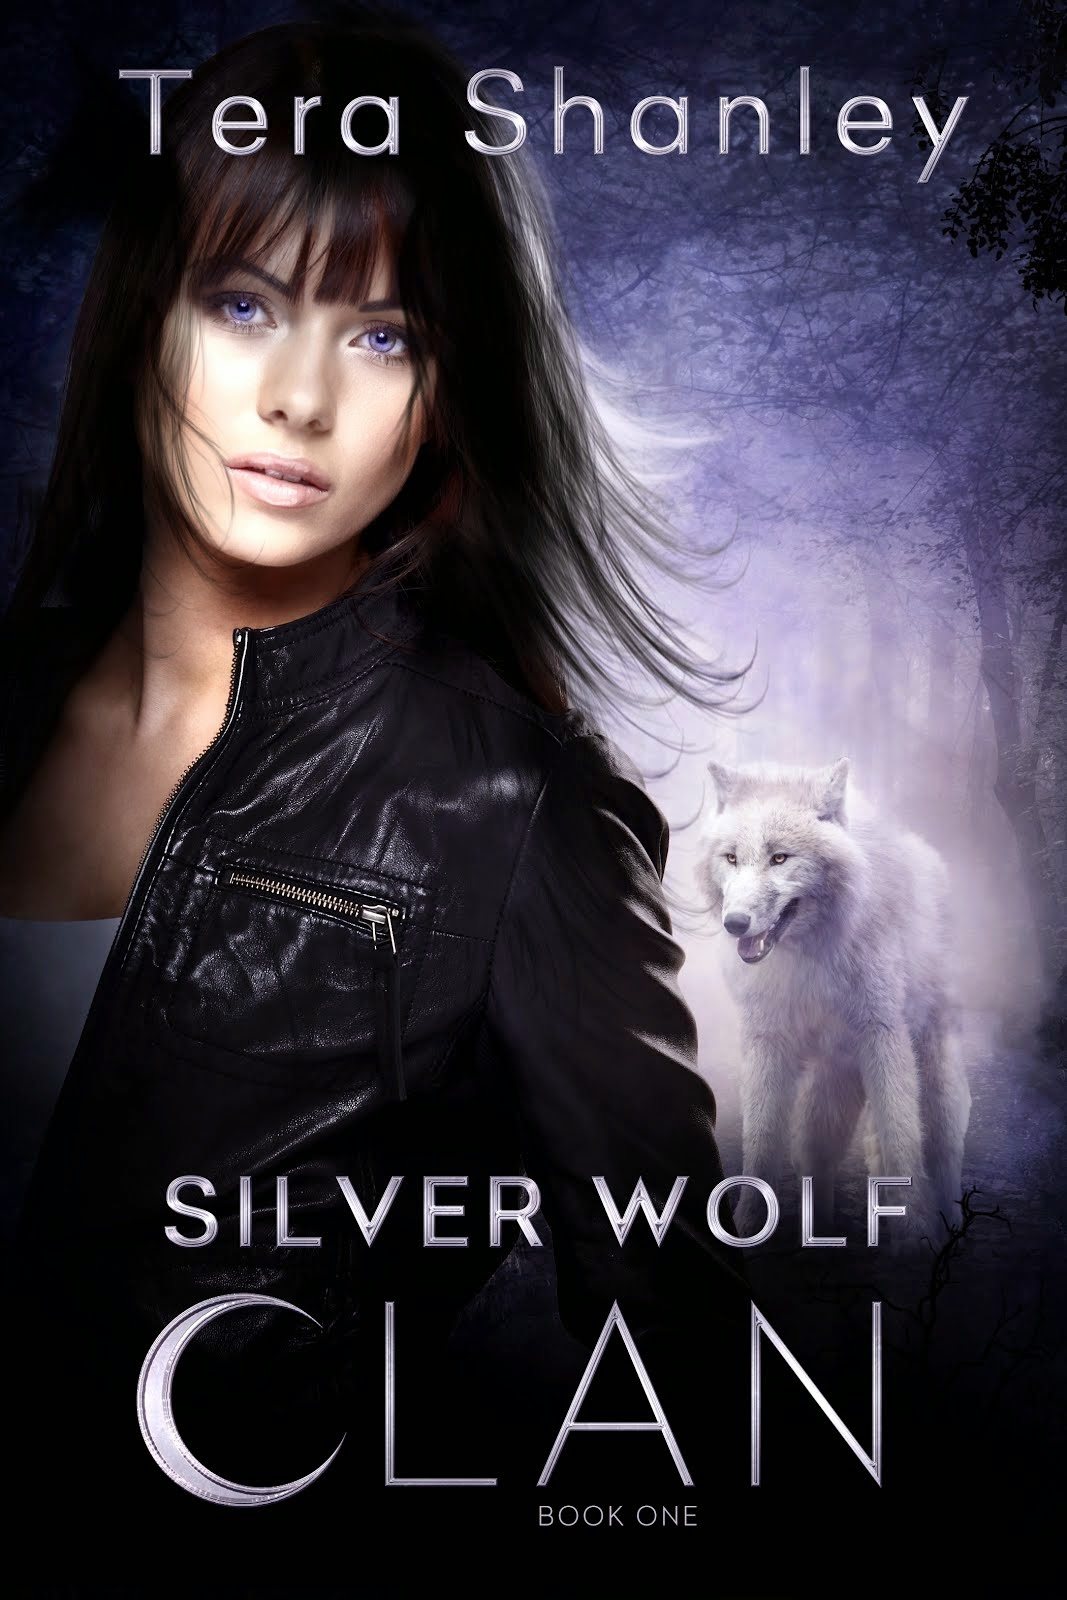 Coming August 4 - Book I in the Silver Wolf Clan series